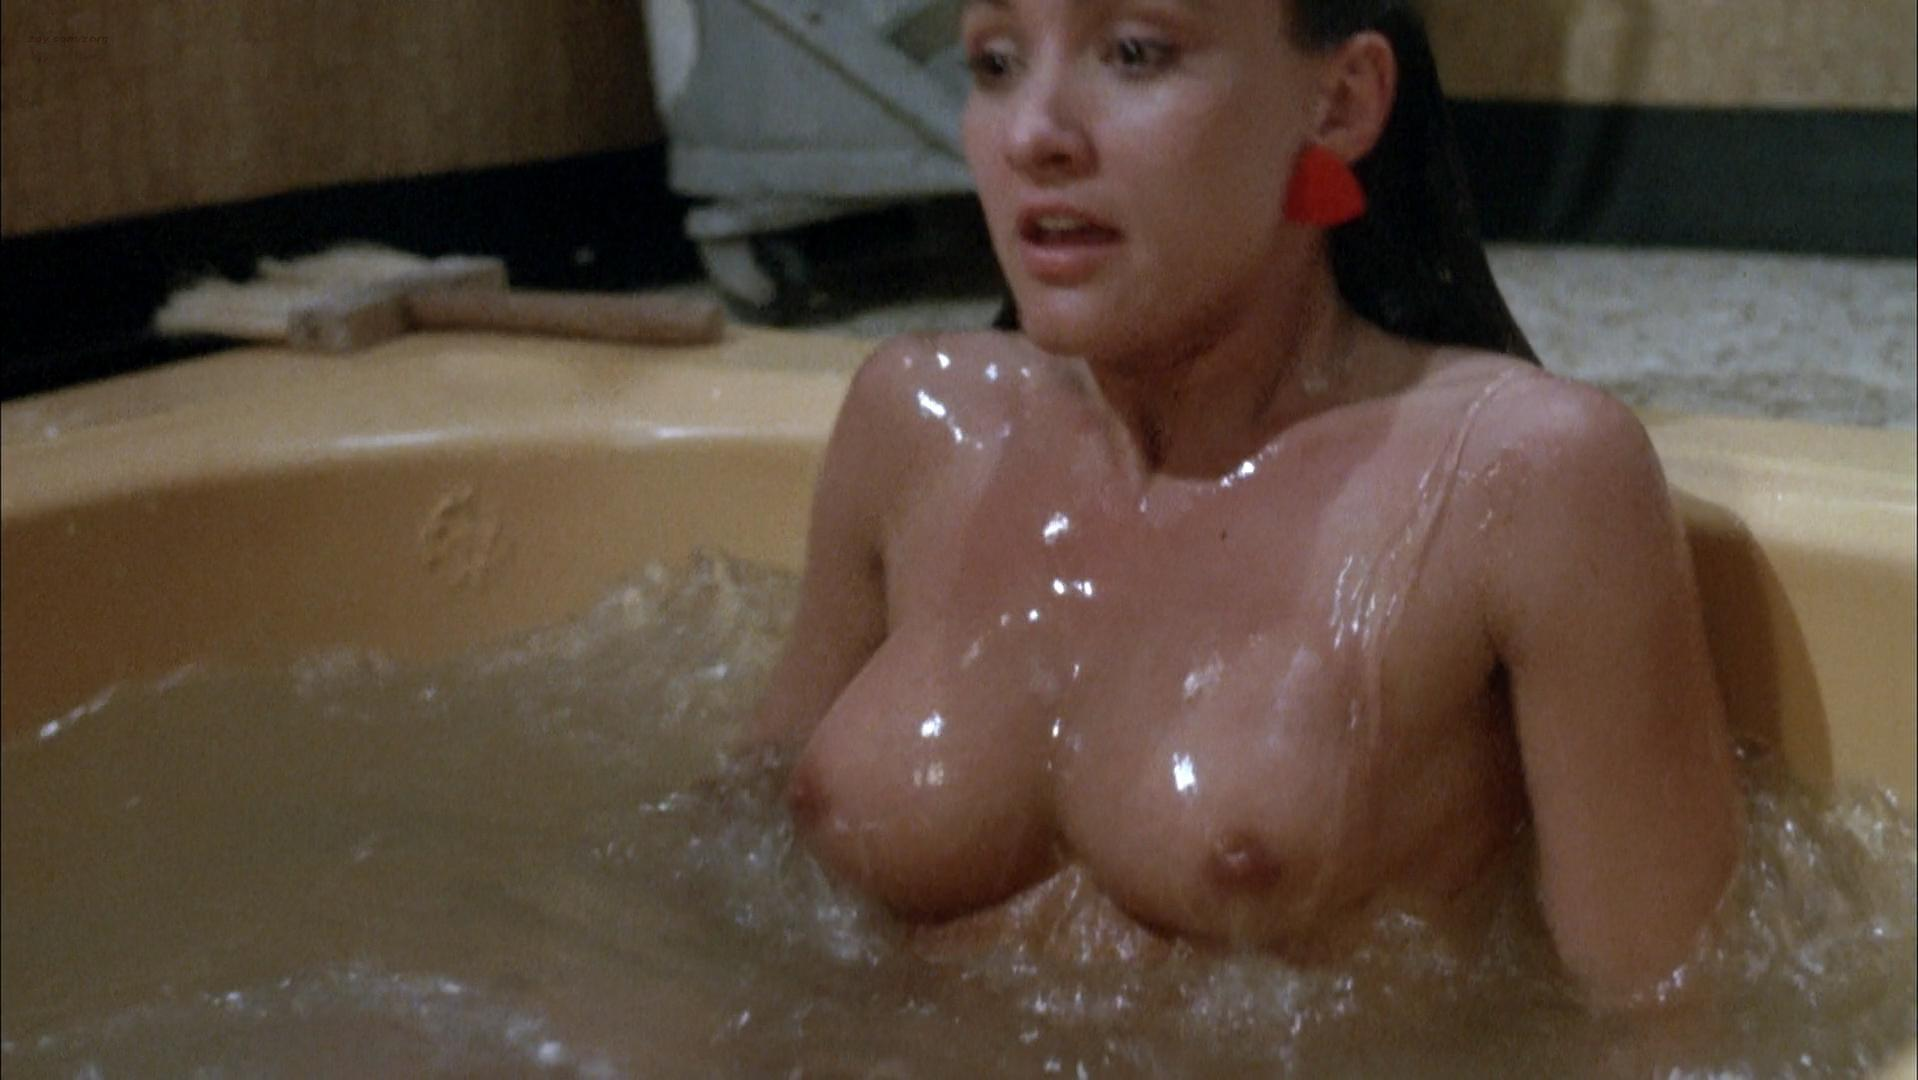 Damon Merrill nude, Michelle Watkins nude, Tracye Walker nude - The Outing (1987)